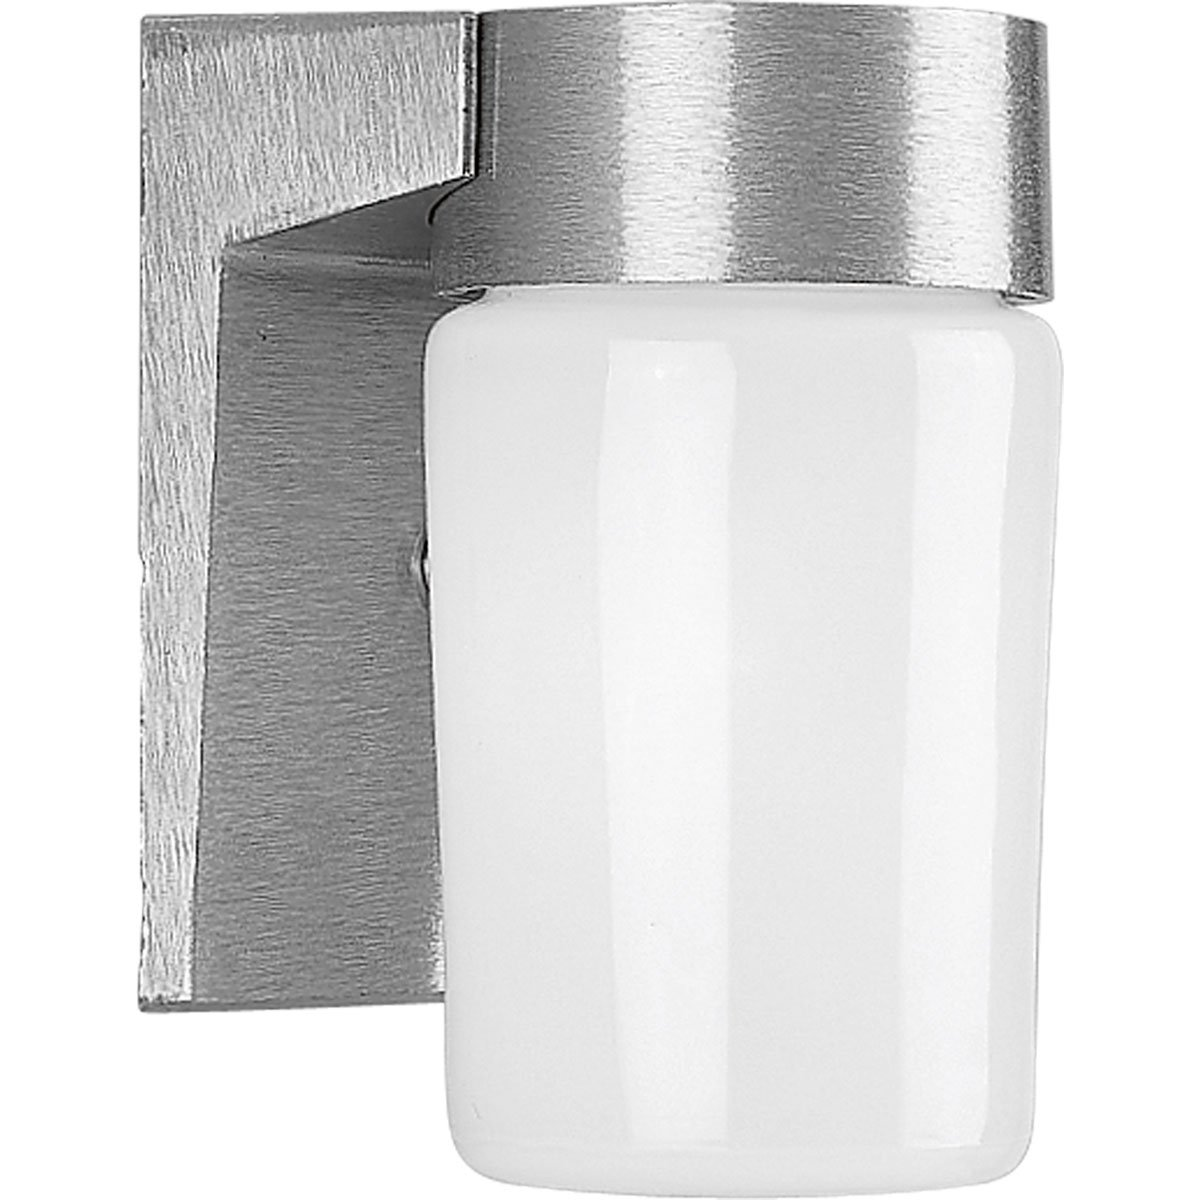 Sauna Accessories - Vapor Proof Wall Light ACCES-FIN-P5511 by finlandia